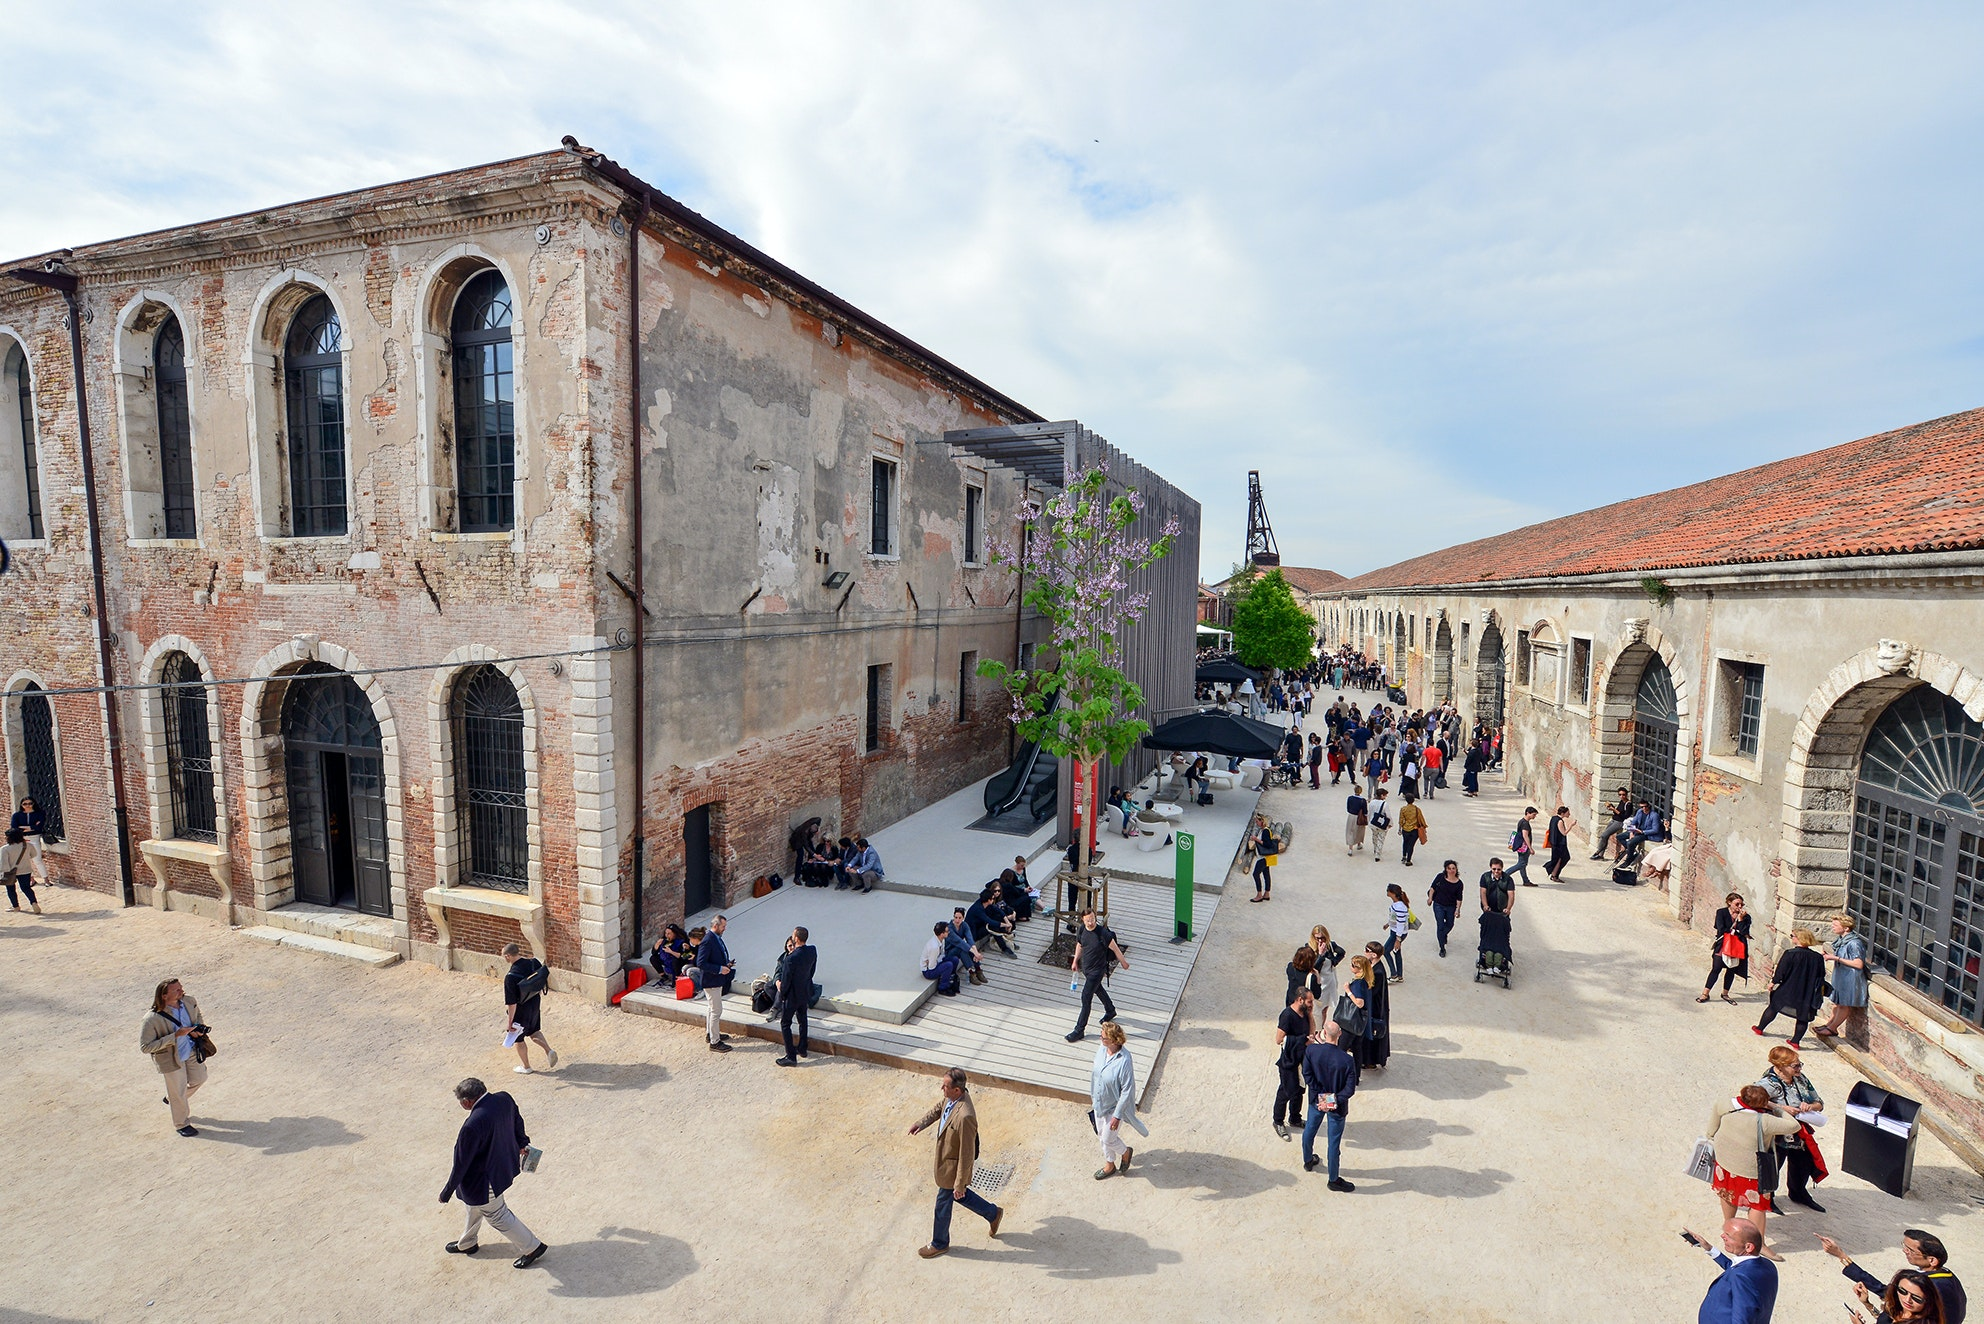 The Arsenale, one of two main sites at the Venice Biennale